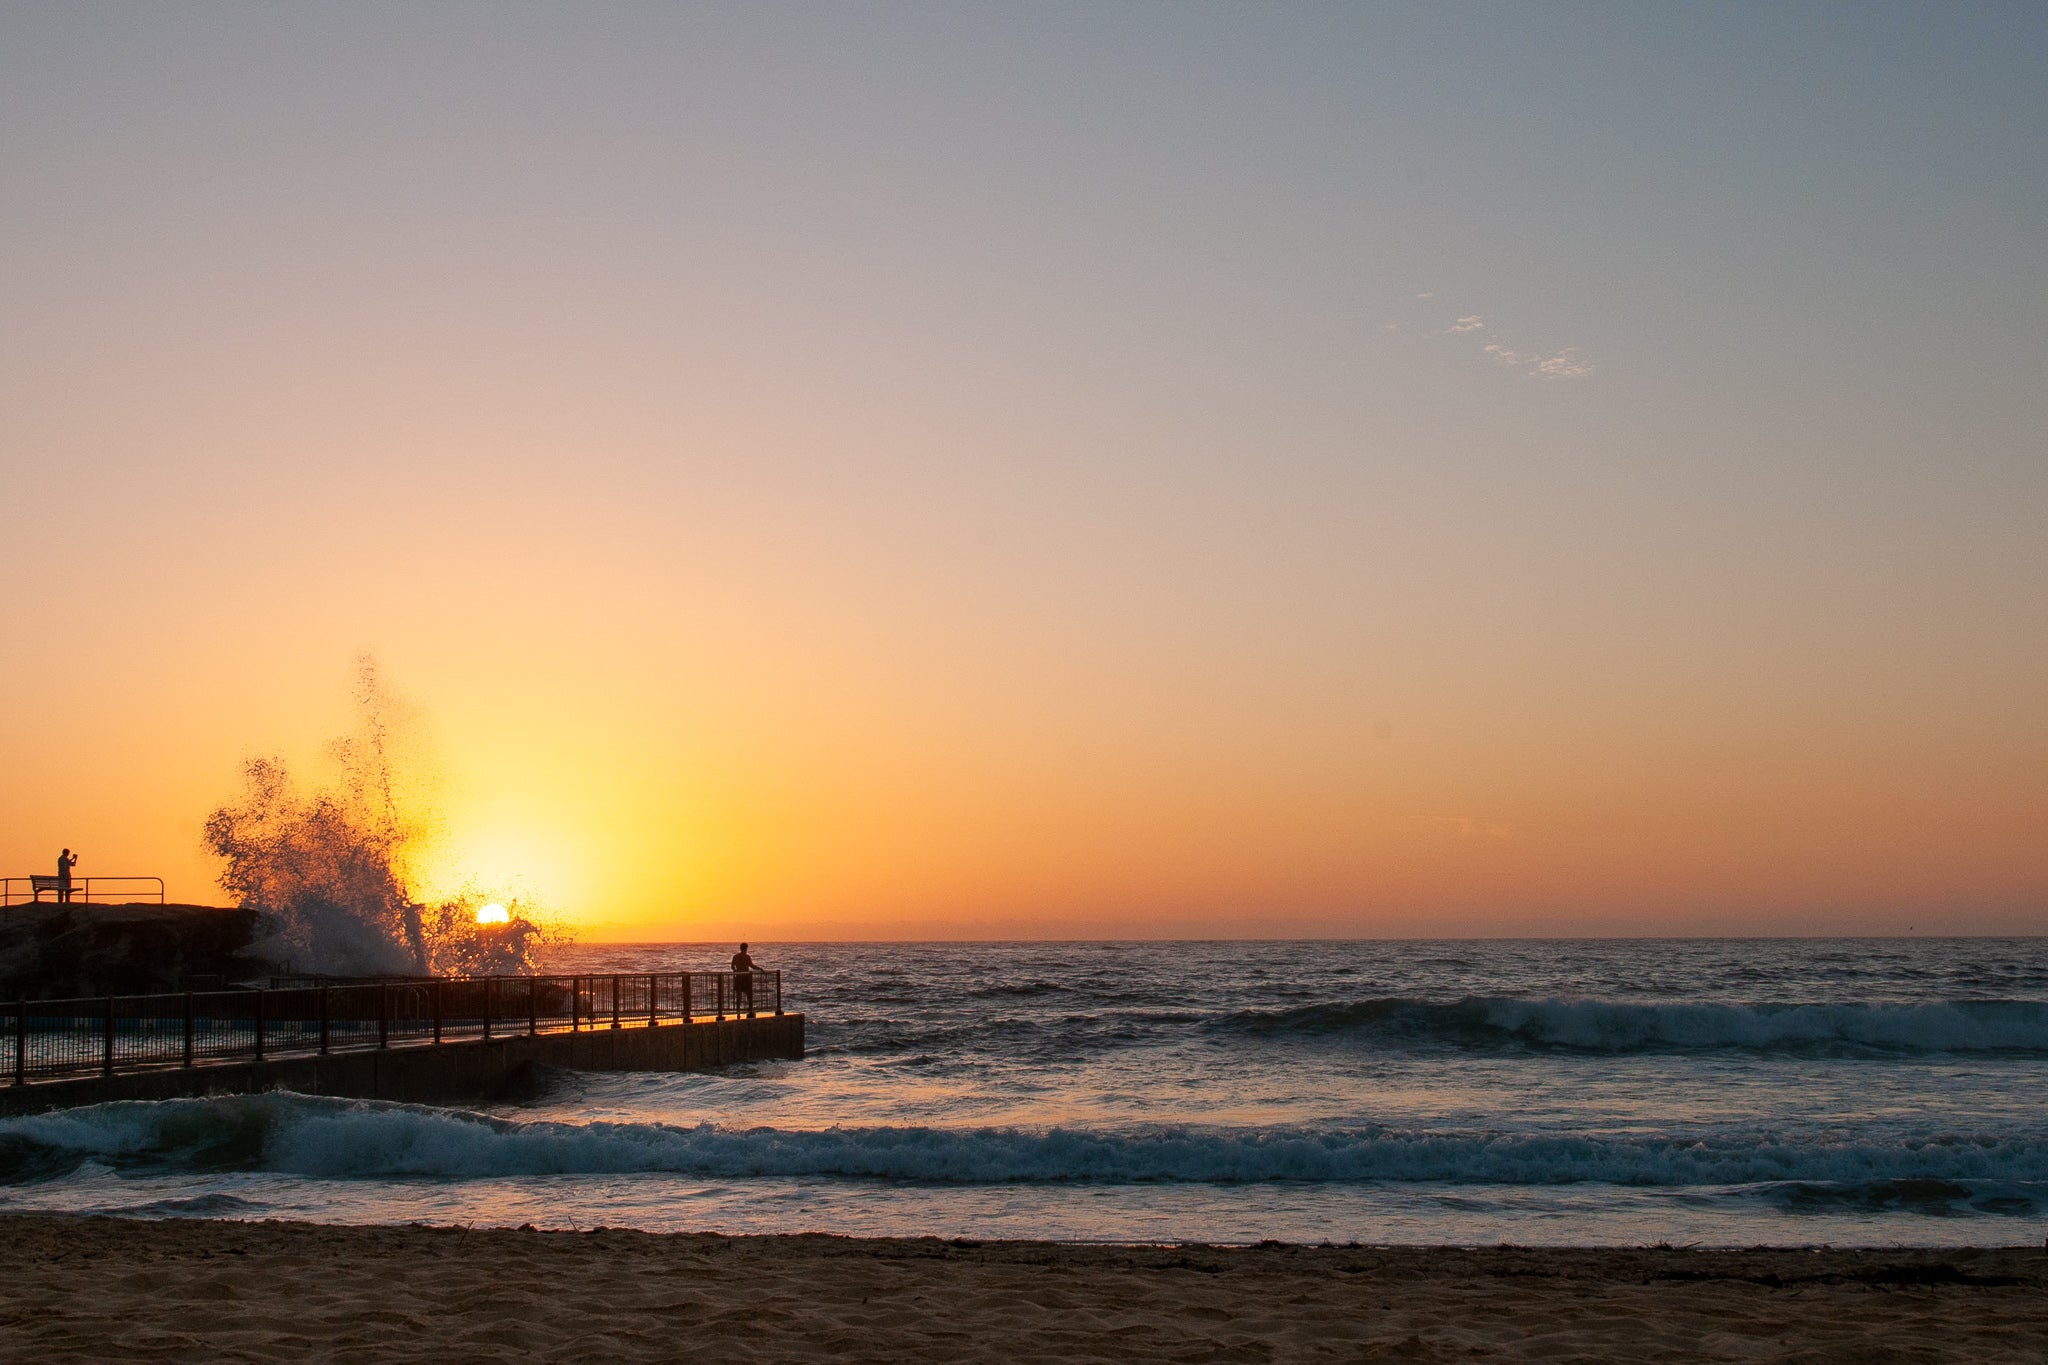 Sunrise photo from the 18th February 2019 at Queenscliff pool in Sydney